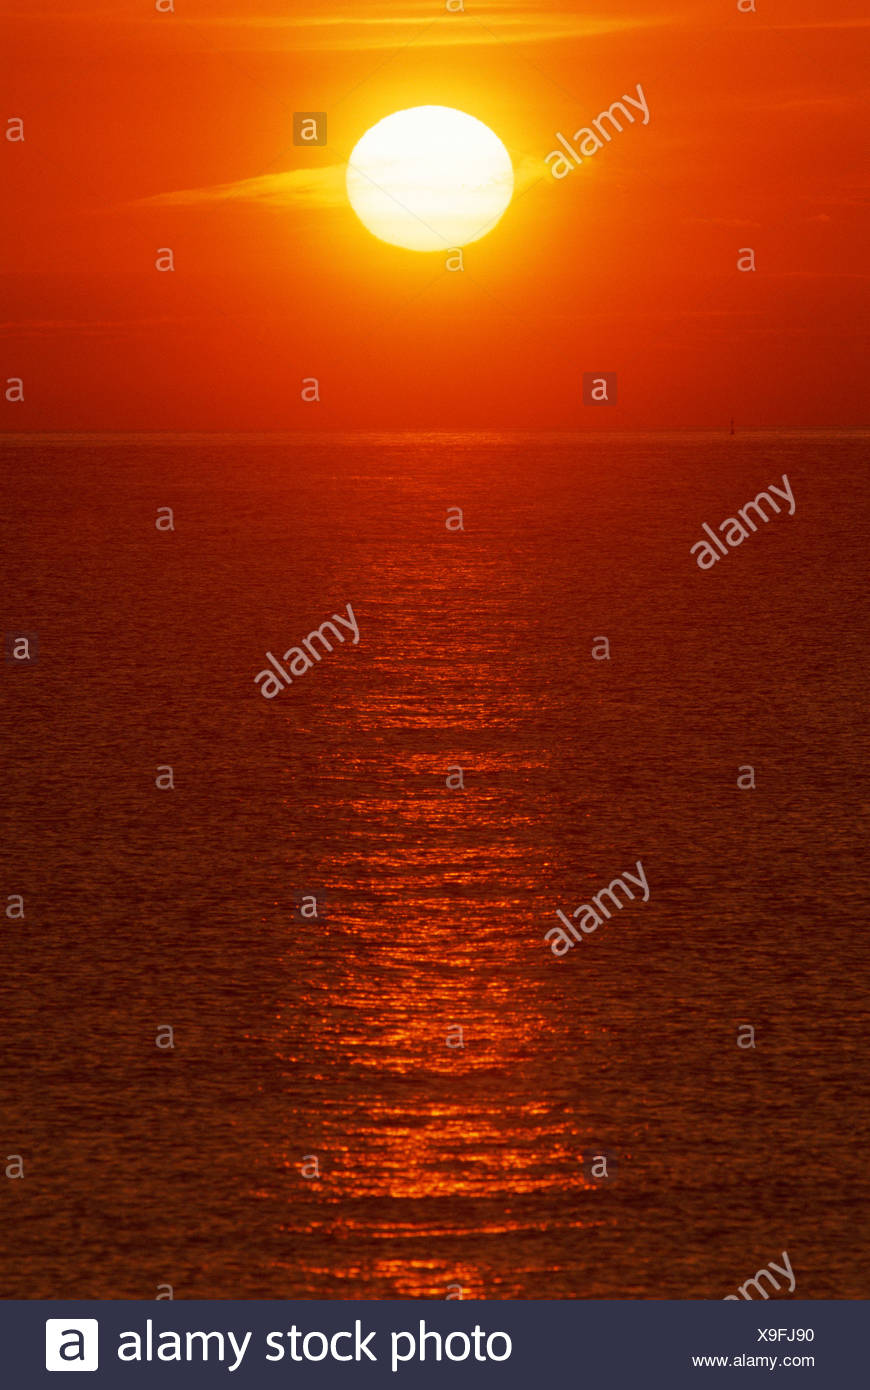 Sun setting over sea with reflections in water Spain - Stock Image